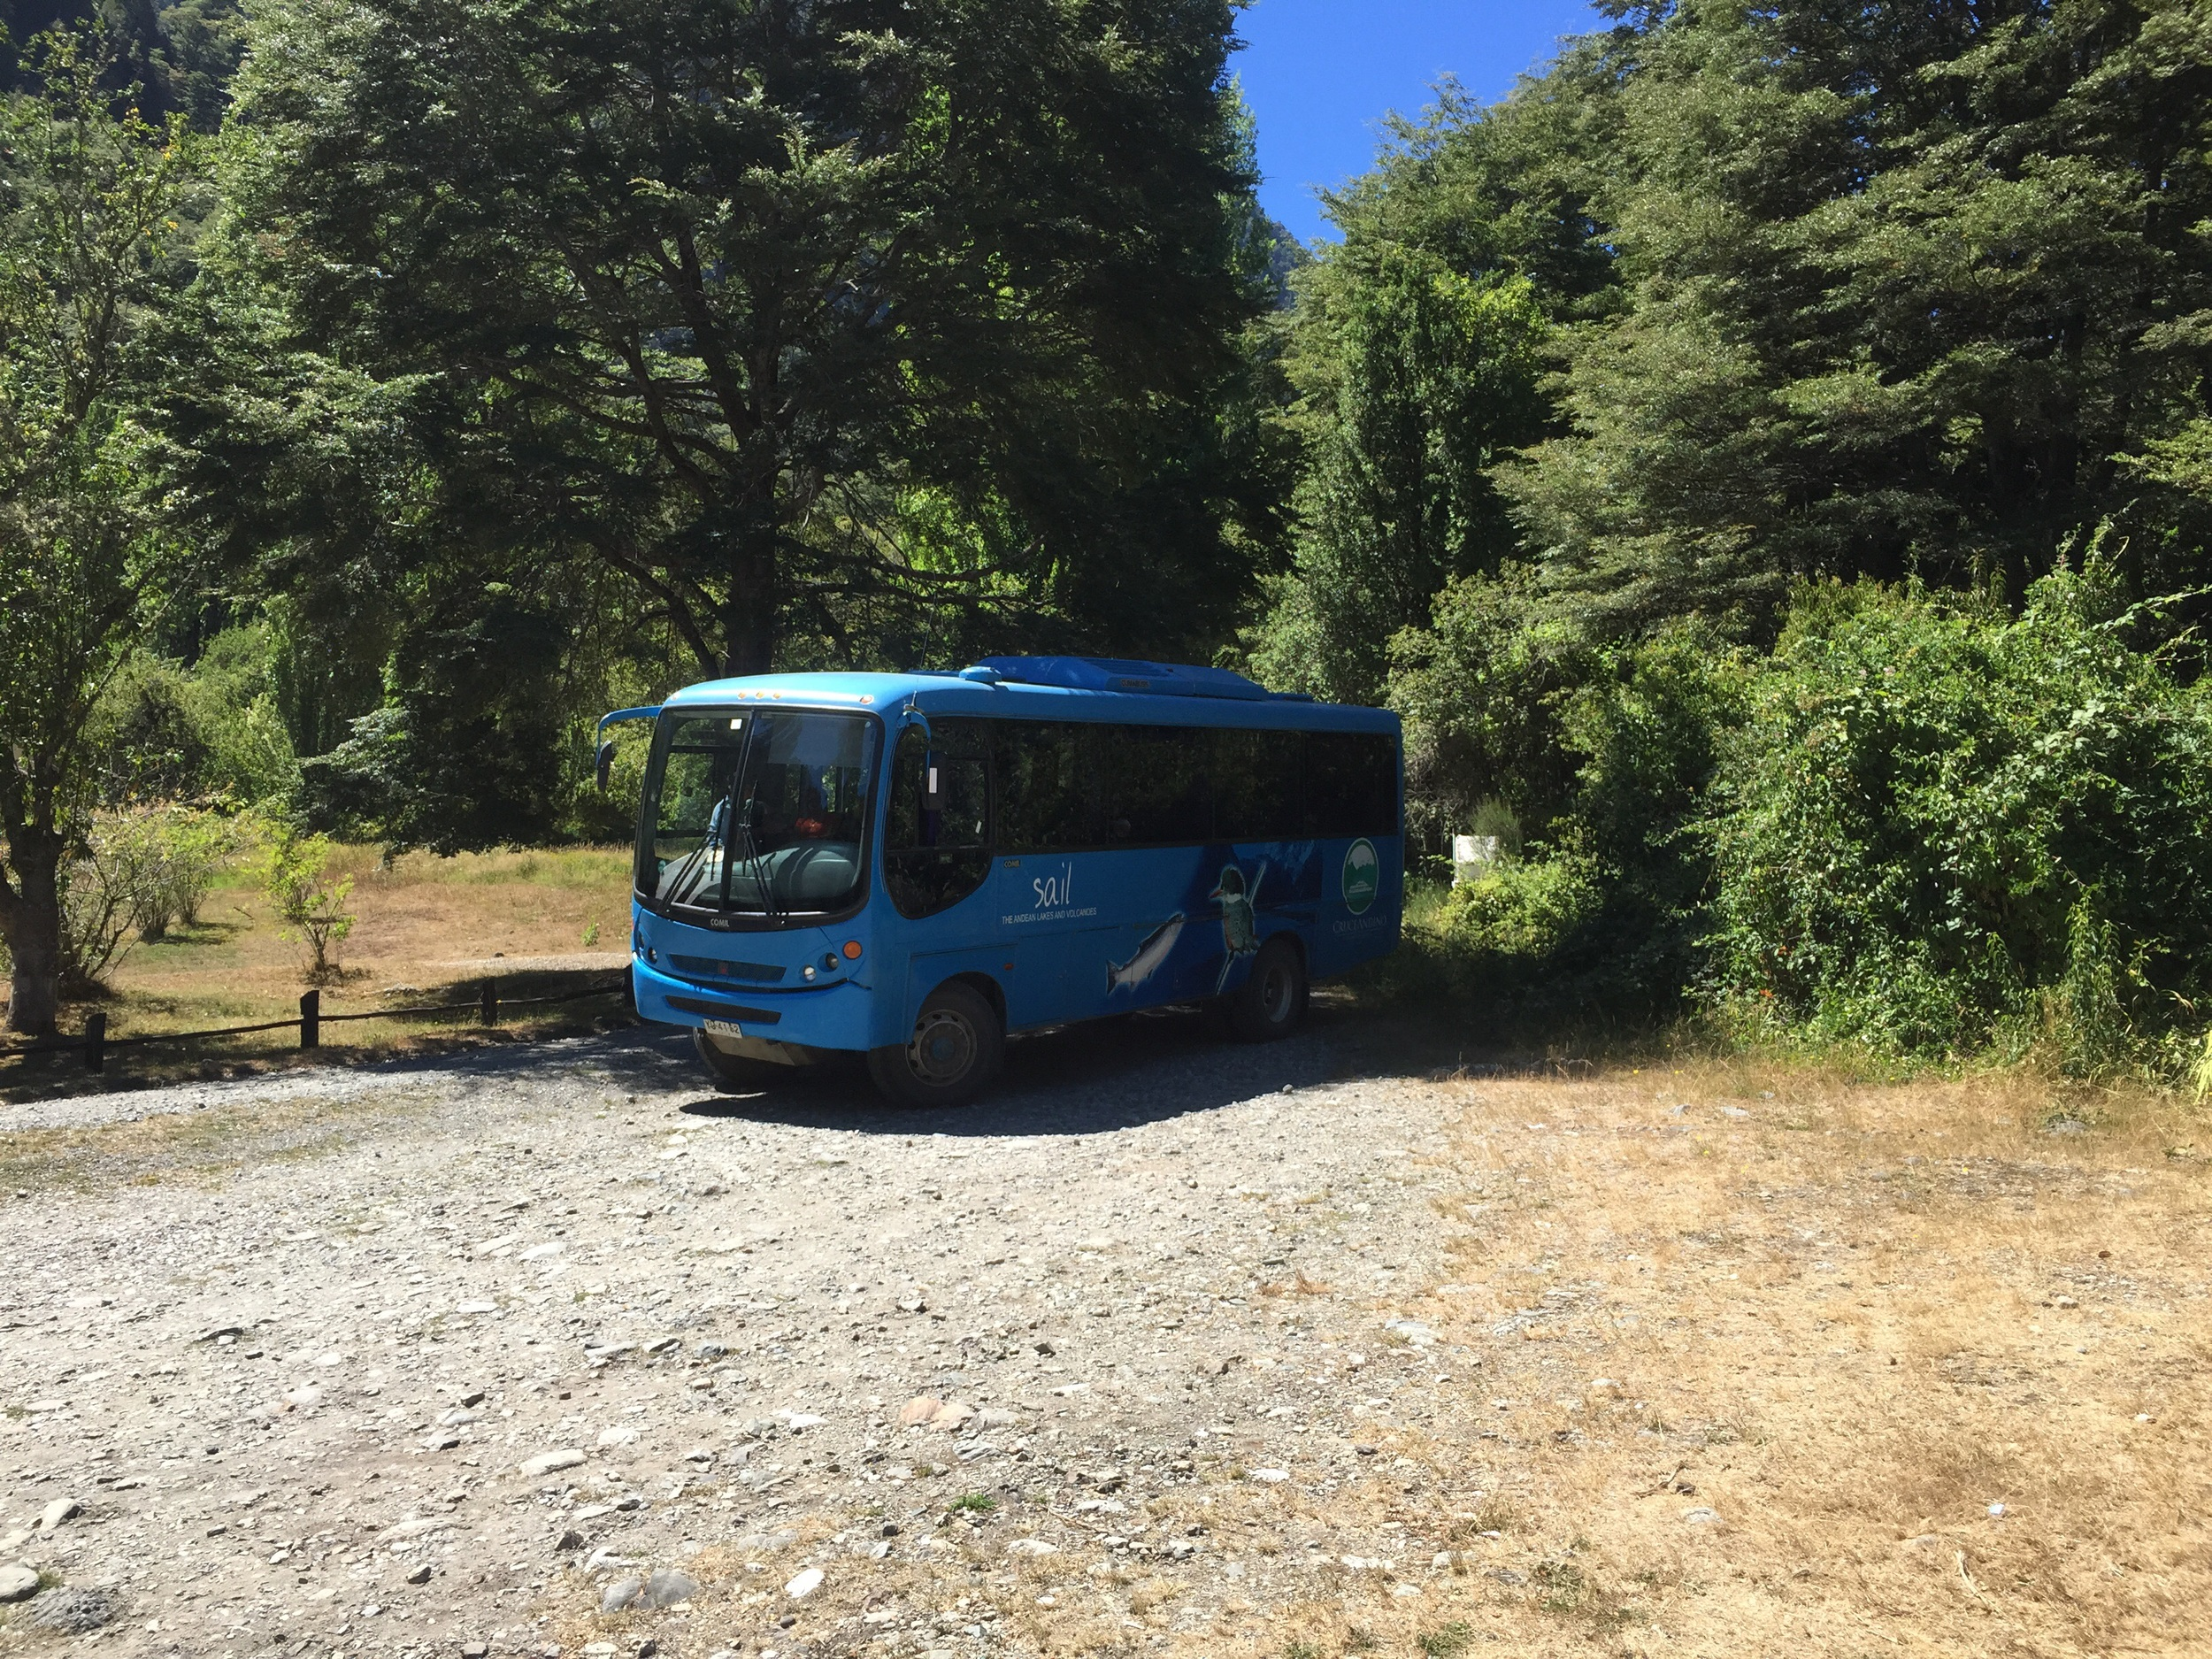 Our off road bus across the Andes. The guy driving this was a pro.